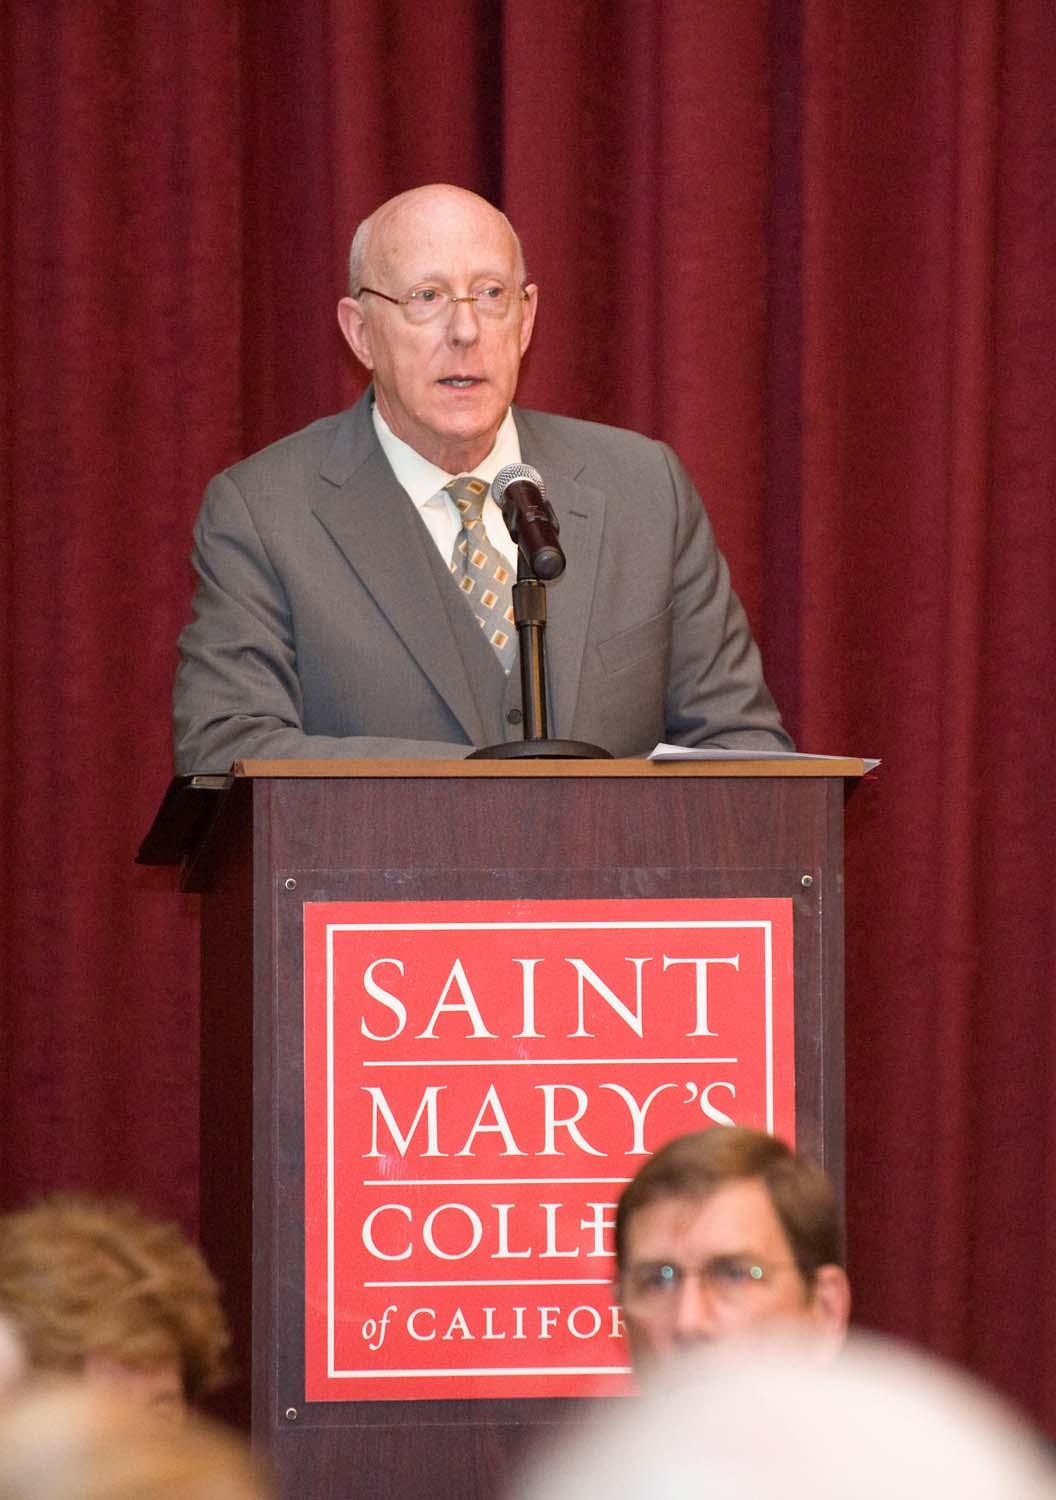 Dean of the School of Liberal Arts Steve Woolpert set the stage for the symposium.